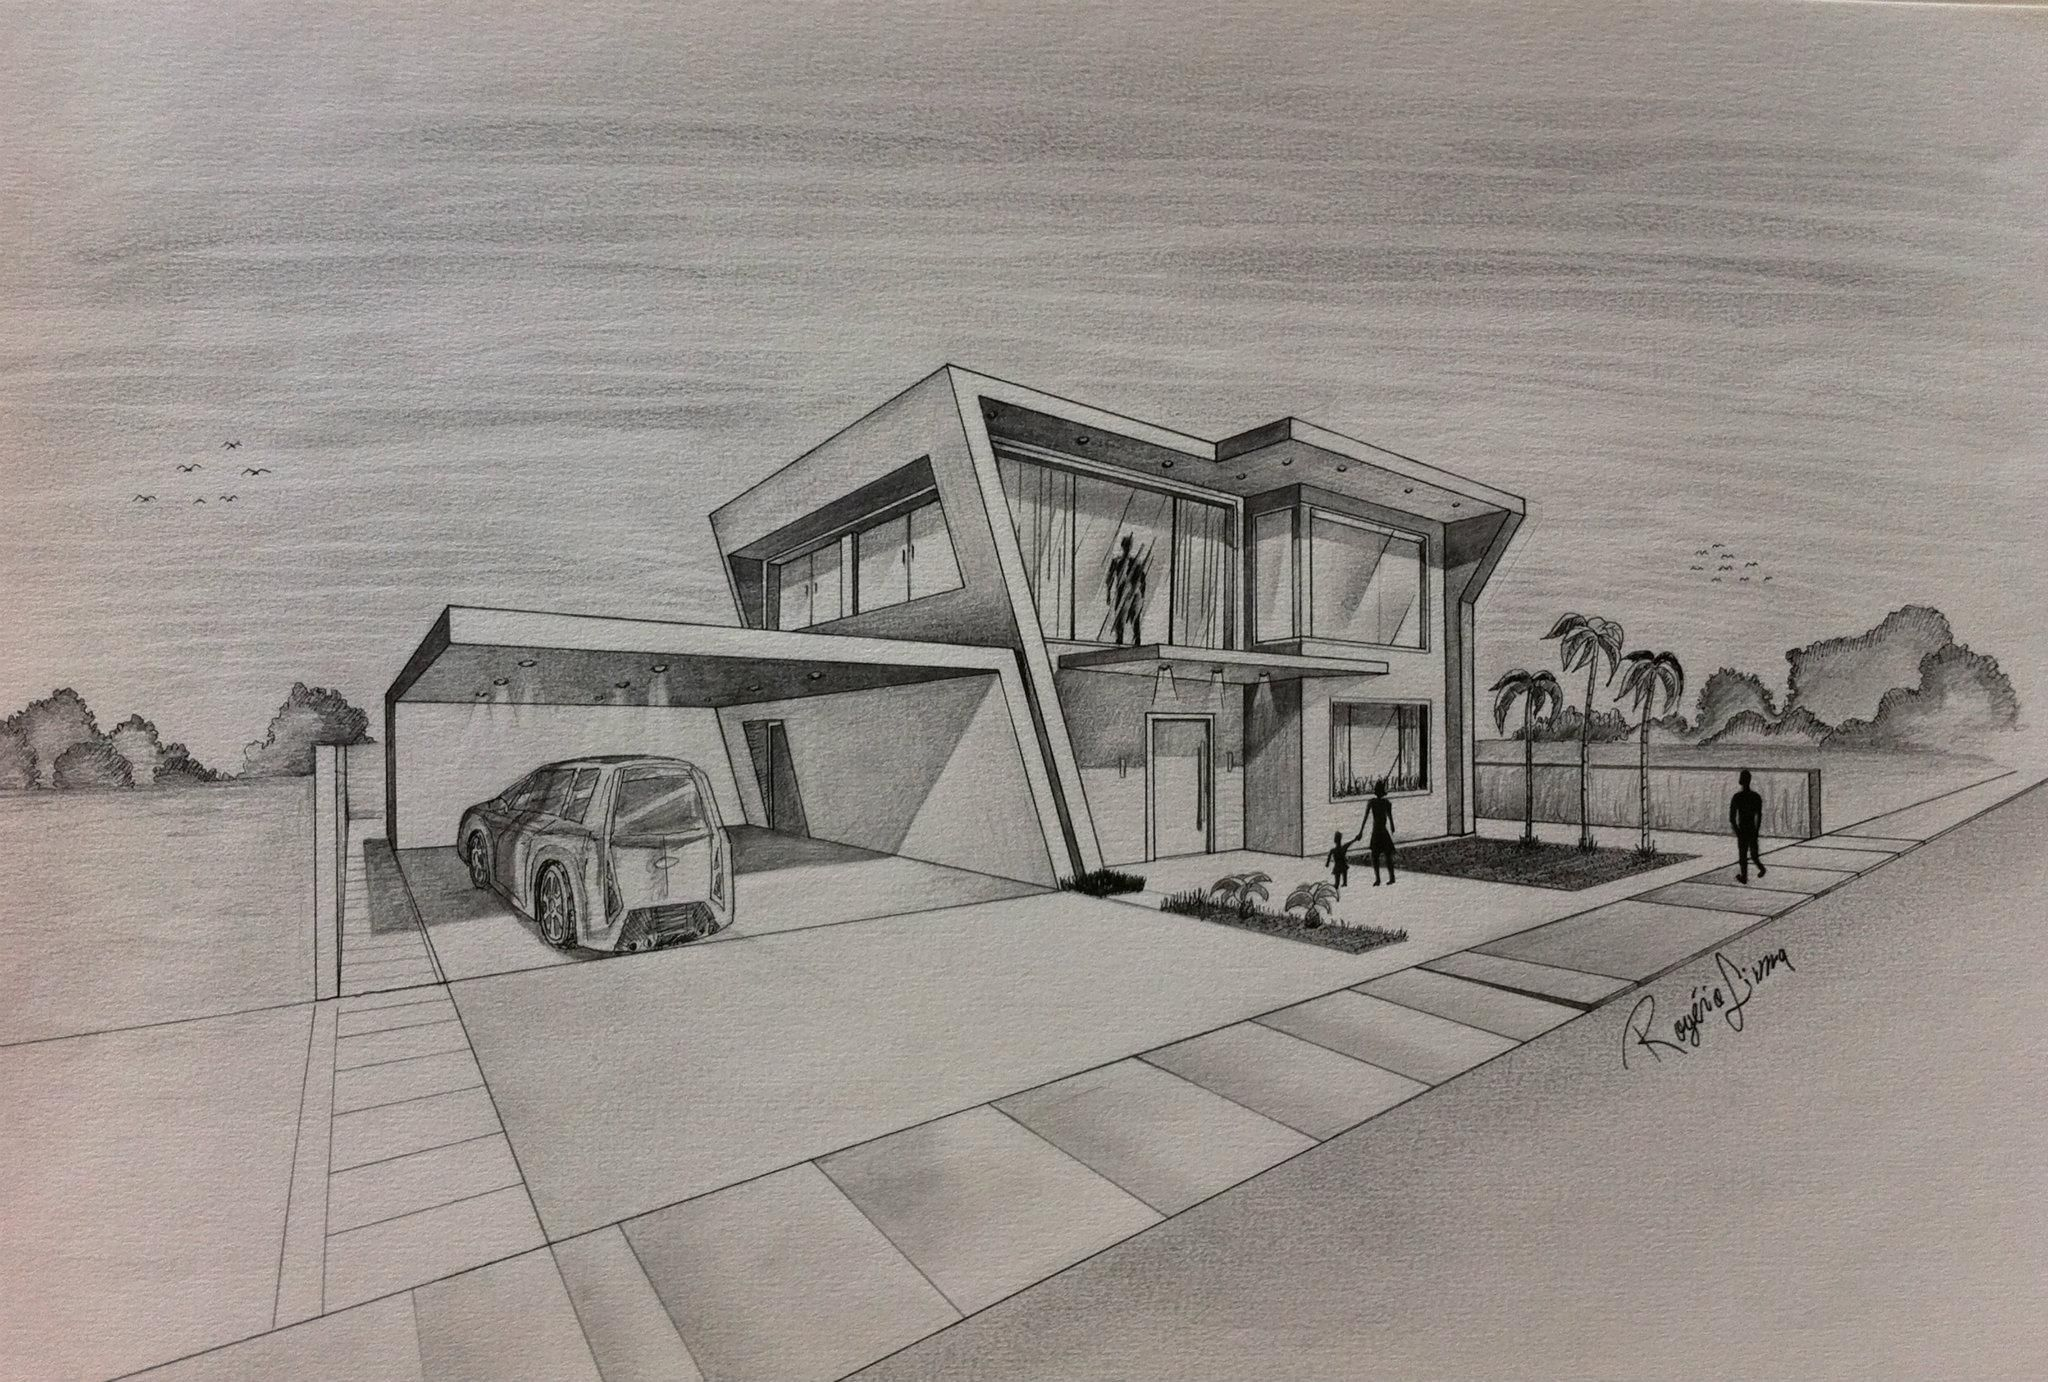 modern concept architectural buildings sketches and